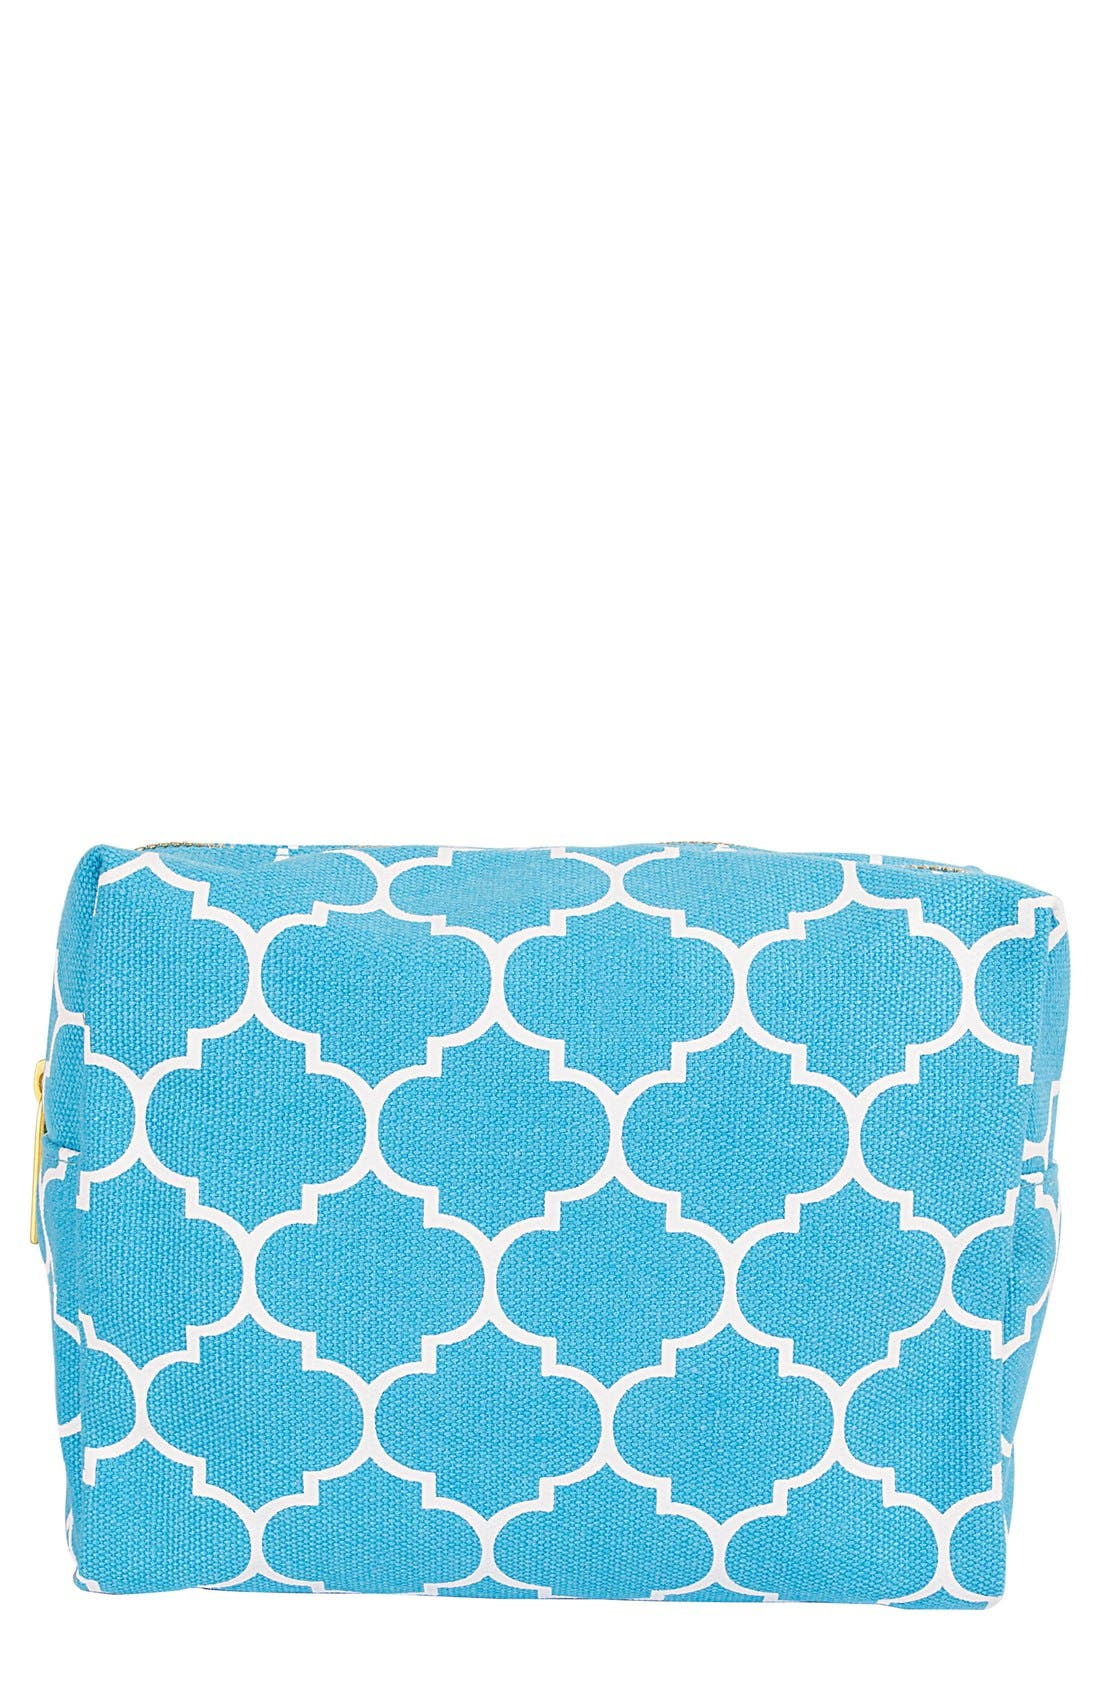 Monogram Cosmetics Bag,                         Main,                         color, BLUE